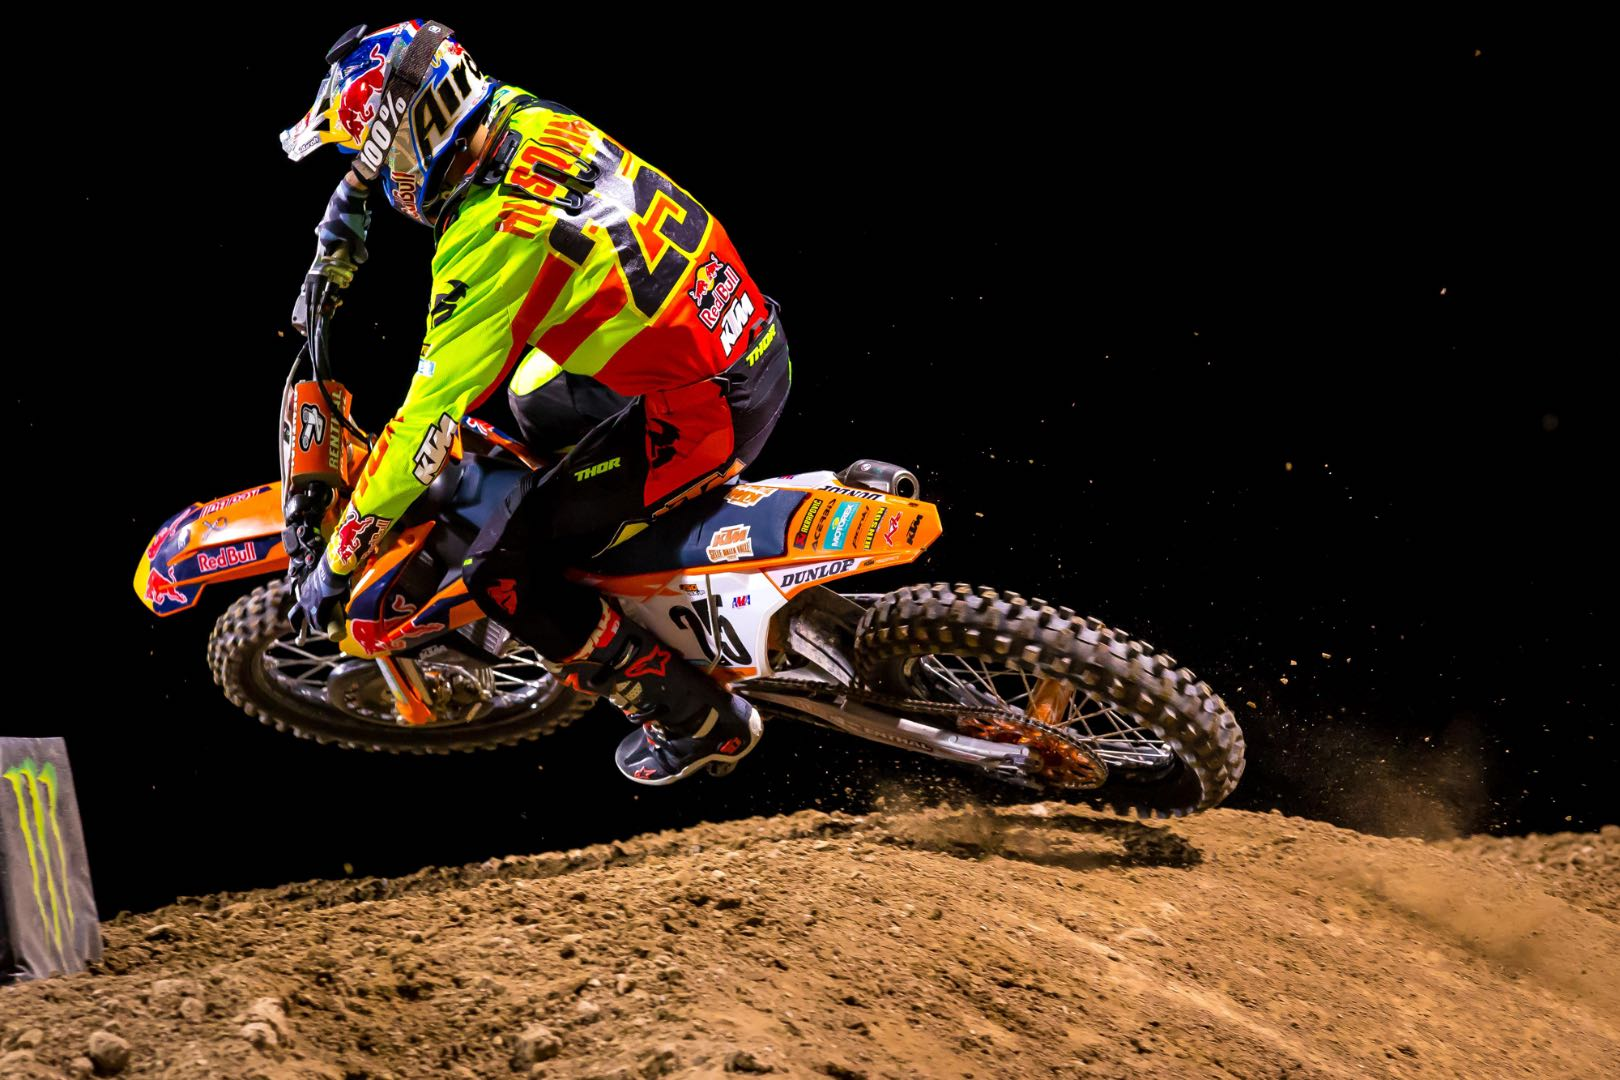 KTM's Marvin Musquin Monster Energy Cup